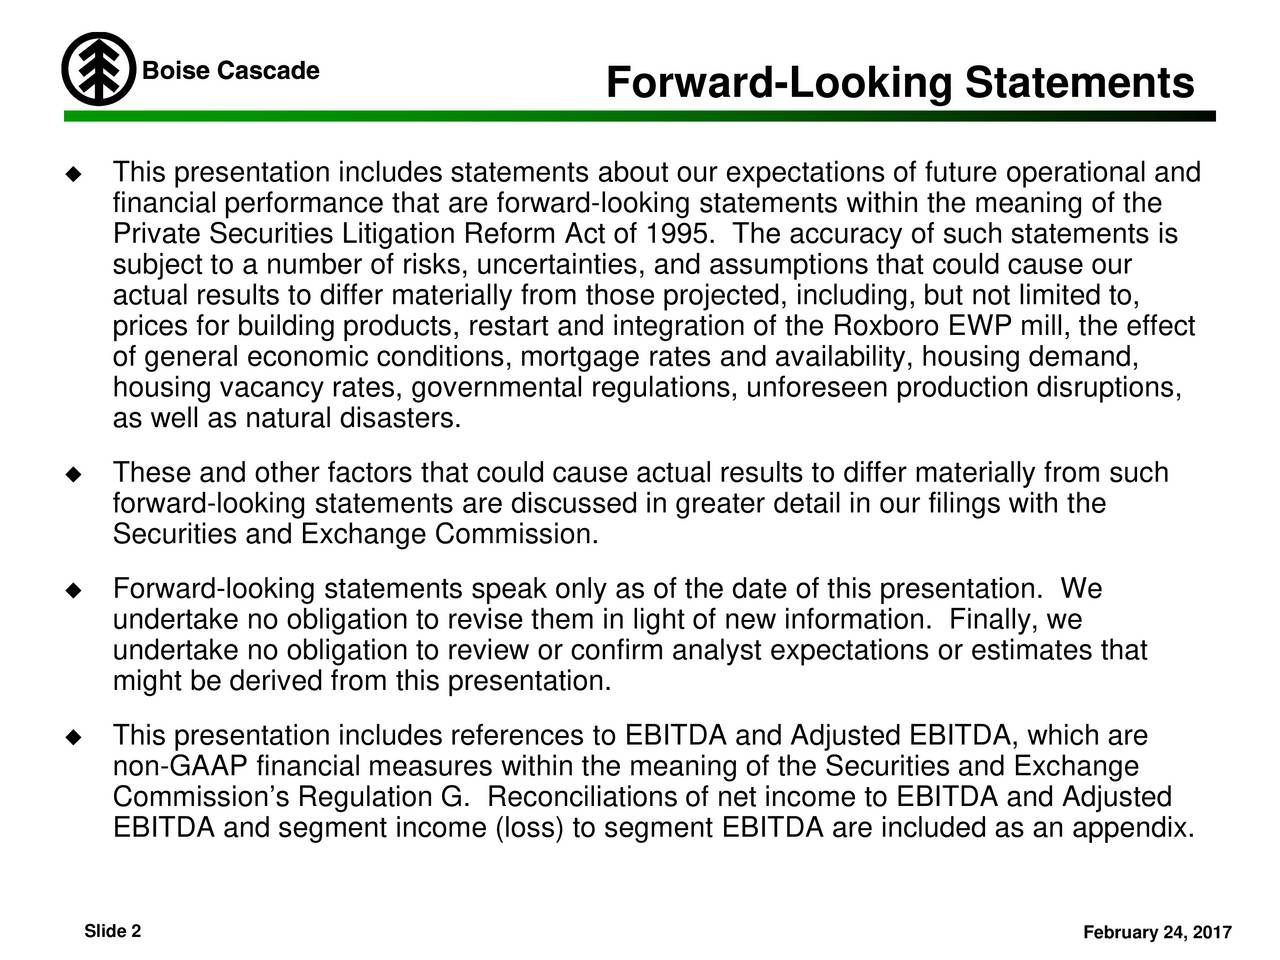 This presentation includes statements about our expectations of future operational and financial performance that are forward-looking statements within the meaning of the Private Securities Litigation Reform Act of 1995. The accuracy of such statements is subject to a number of risks, uncertainties, and assumptions that could cause our actual results to differ materially from those projected, including, but not limited to, prices for building products, restart and integration of the Roxboro EWP mill, the effect of general economic conditions, mortgage rates and availability, housing demand, housing vacancy rates, governmental regulations, unforeseen production disruptions, as well as natural disasters. These and other factors that could cause actual results to differ materially from such forward-looking statements are discussed in greater detail in our filings with the Securities and Exchange Commission. Forward-looking statements speak only as of the date of this presentation. We undertake no obligation to revise them in light of new information. Finally, we undertake no obligation to review or confirm analyst expectations or estimates that might be derived from this presentation. This presentation includes references to EBITDA and Adjusted EBITDA, which are non-GAAP financial measures within the meaning of the Securities and Exchange Commissions Regulation G. Reconciliations of net income to EBITDA and Adjusted EBITDA and segment income (loss) to segment EBITDA are included as an appendix. Slide 2 February 24, 2017